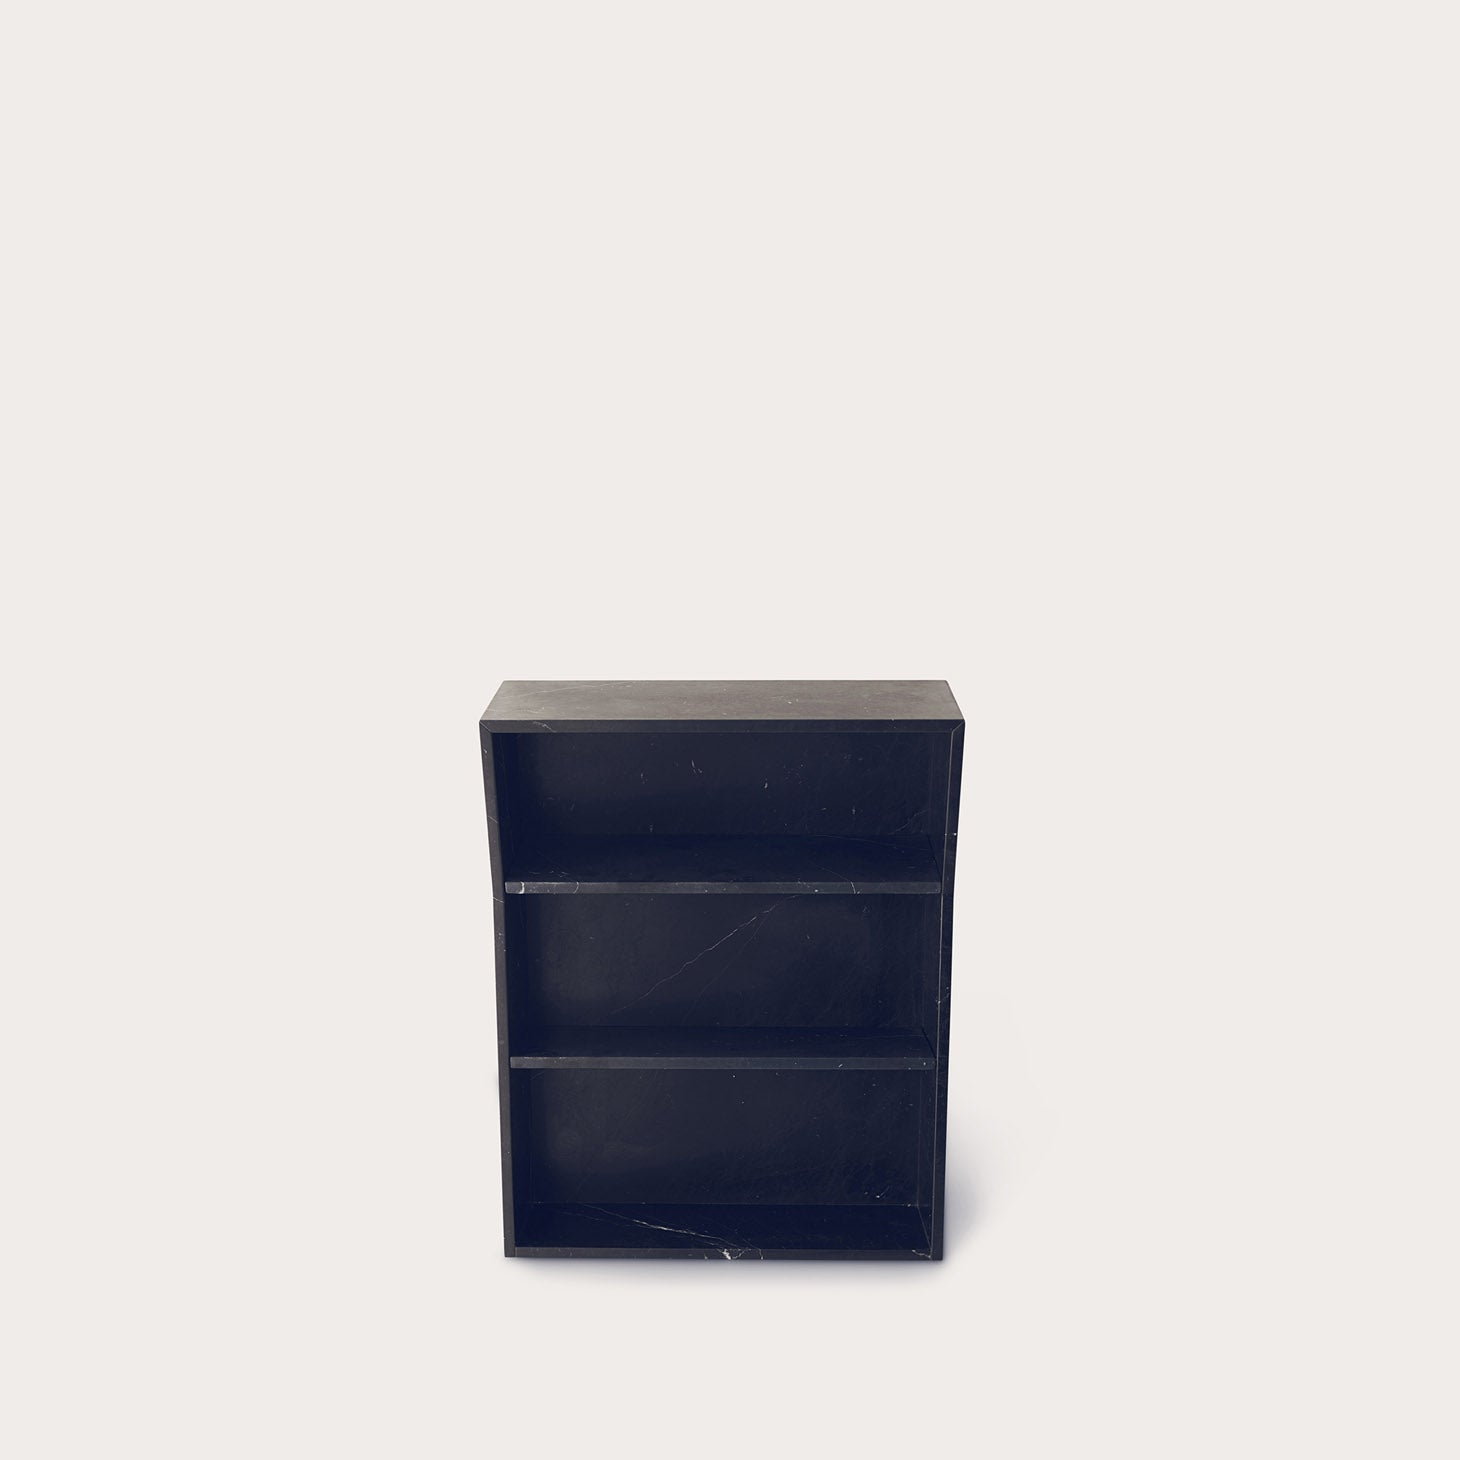 Melt Storage Marsotto Designer Furniture Sku: 625-220-10001